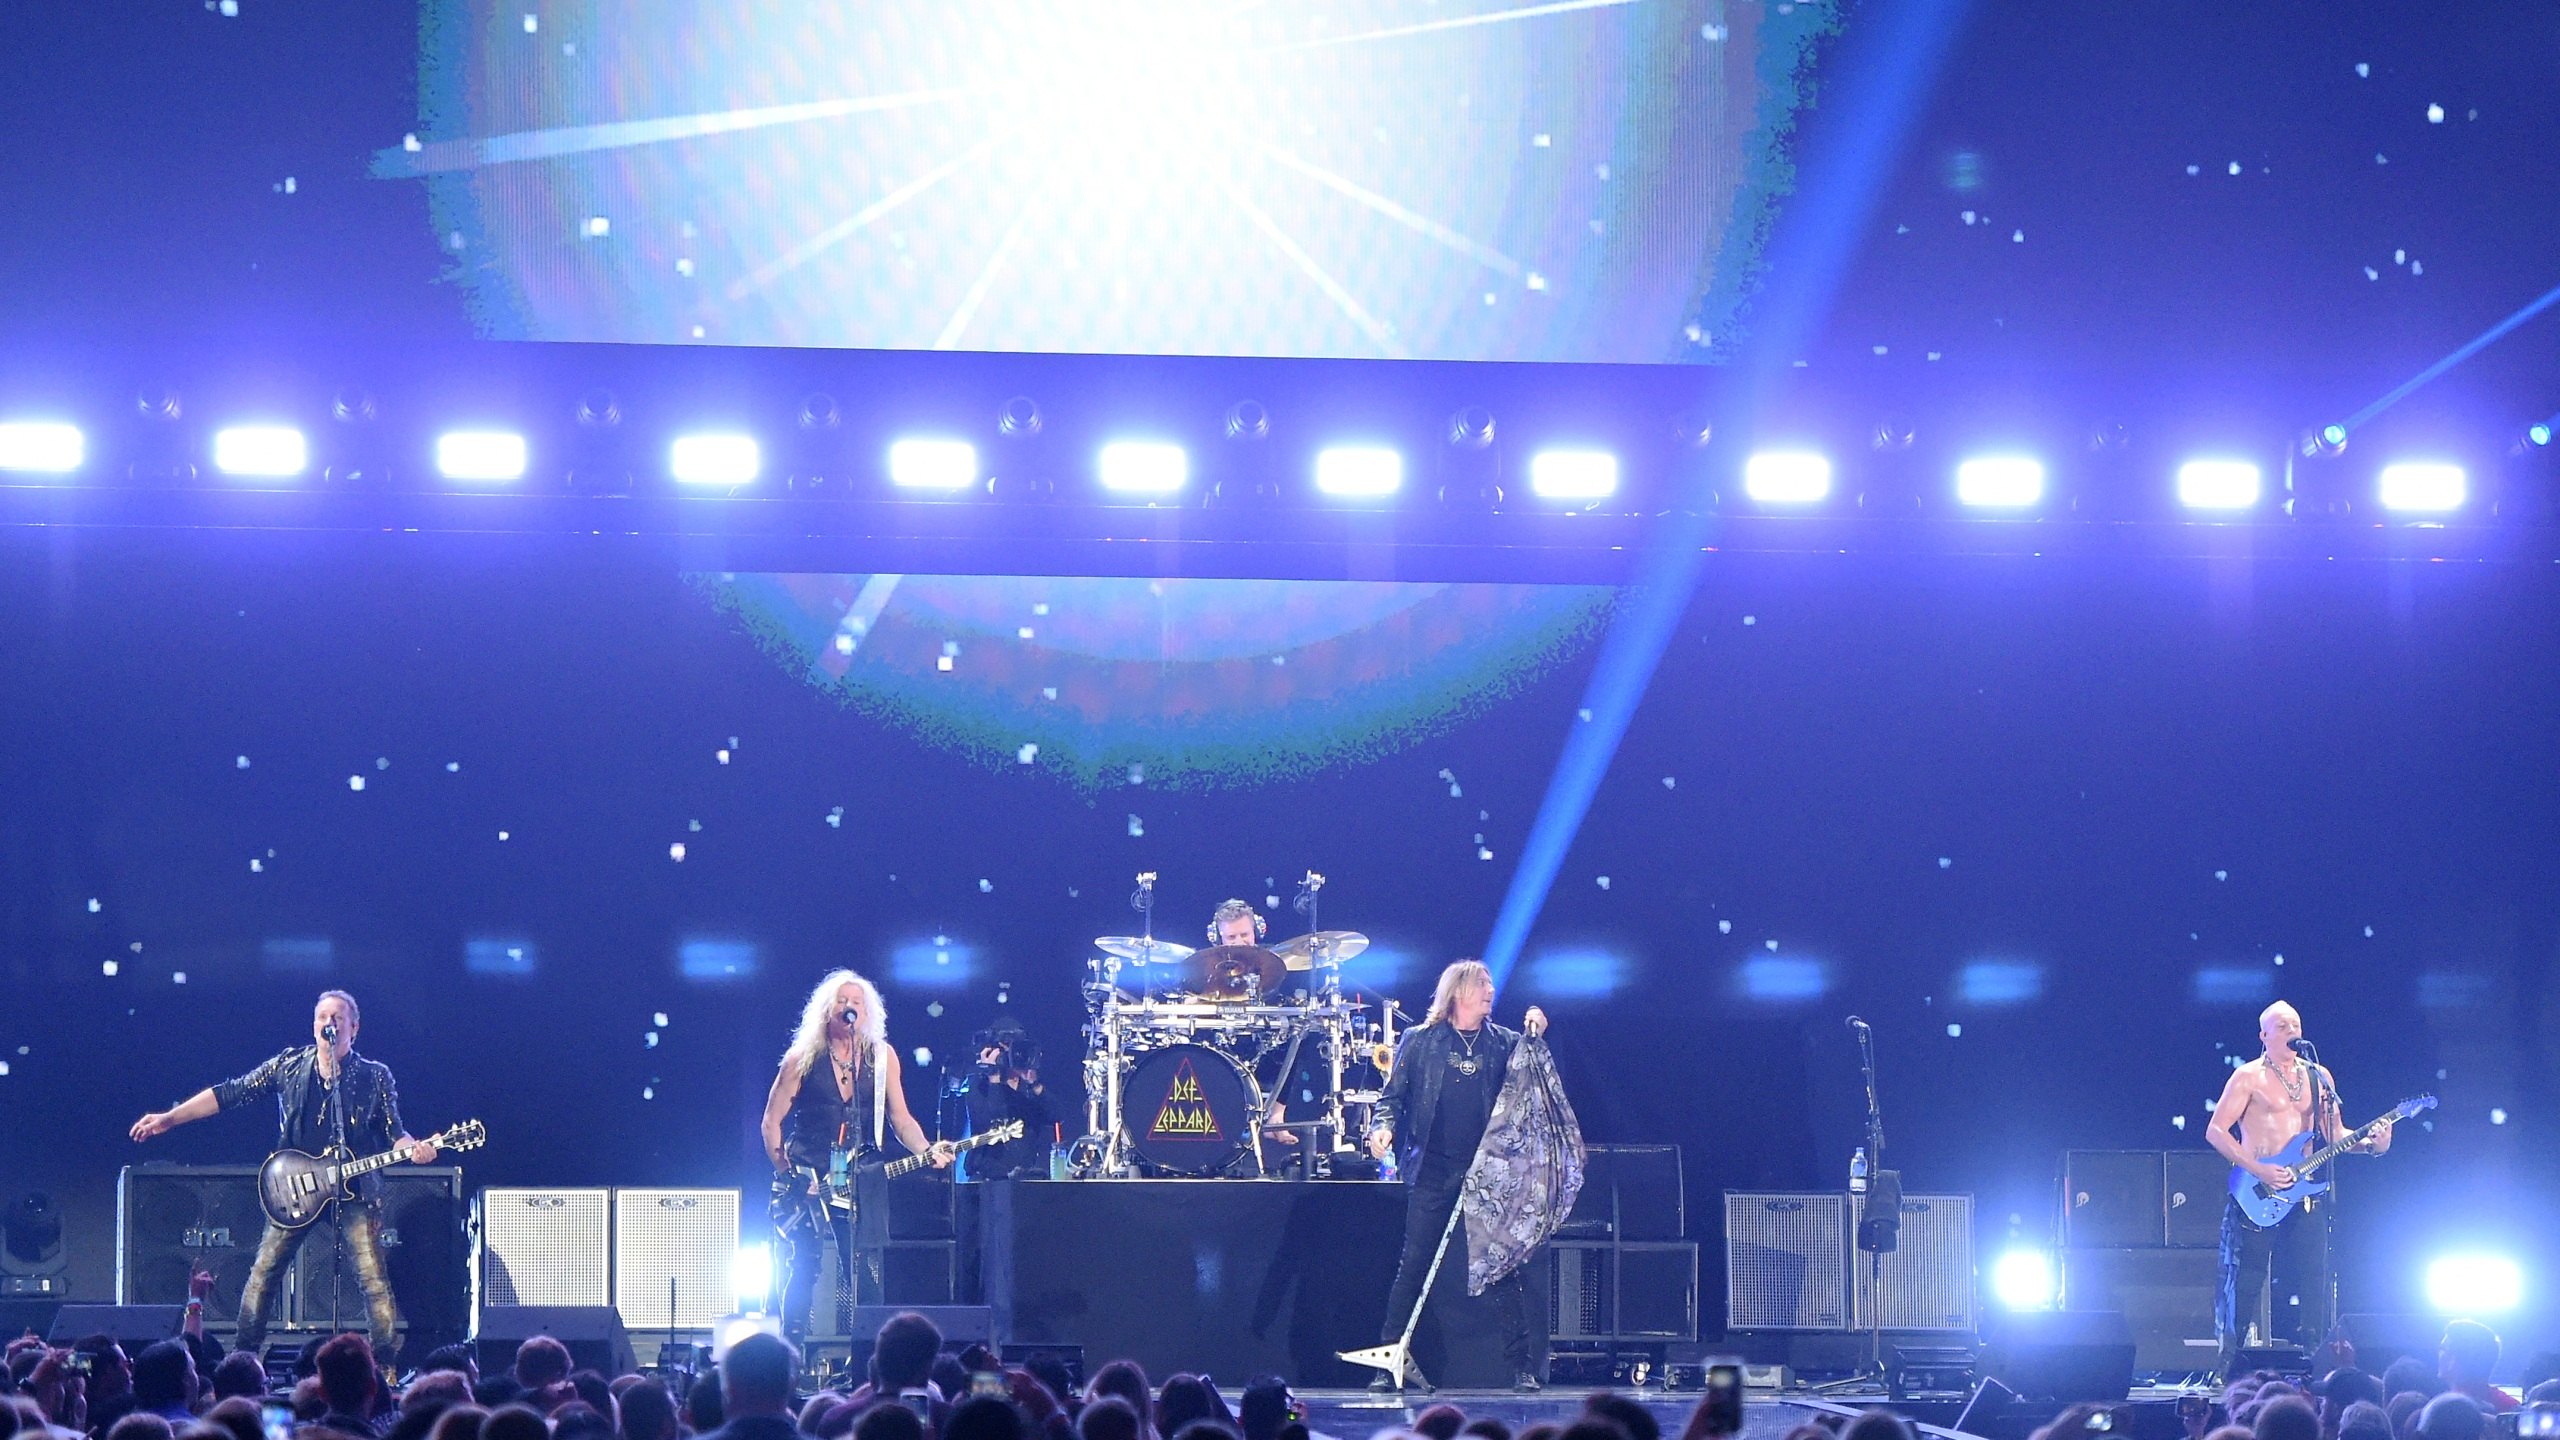 LAS VEGAS, NEVADA - SEPTEMBER 21: (L-R) Vivian Campbell, Rick Savage, Rick Allen, Joe Elliott and Phil Collen of Def Leppard perform onstage during the 2019 iHeartRadio Music Festival at T-Mobile Arena on September 21, 2019 in Las Vegas, Nevada. (Photo by Ethan Miller/Getty Images)